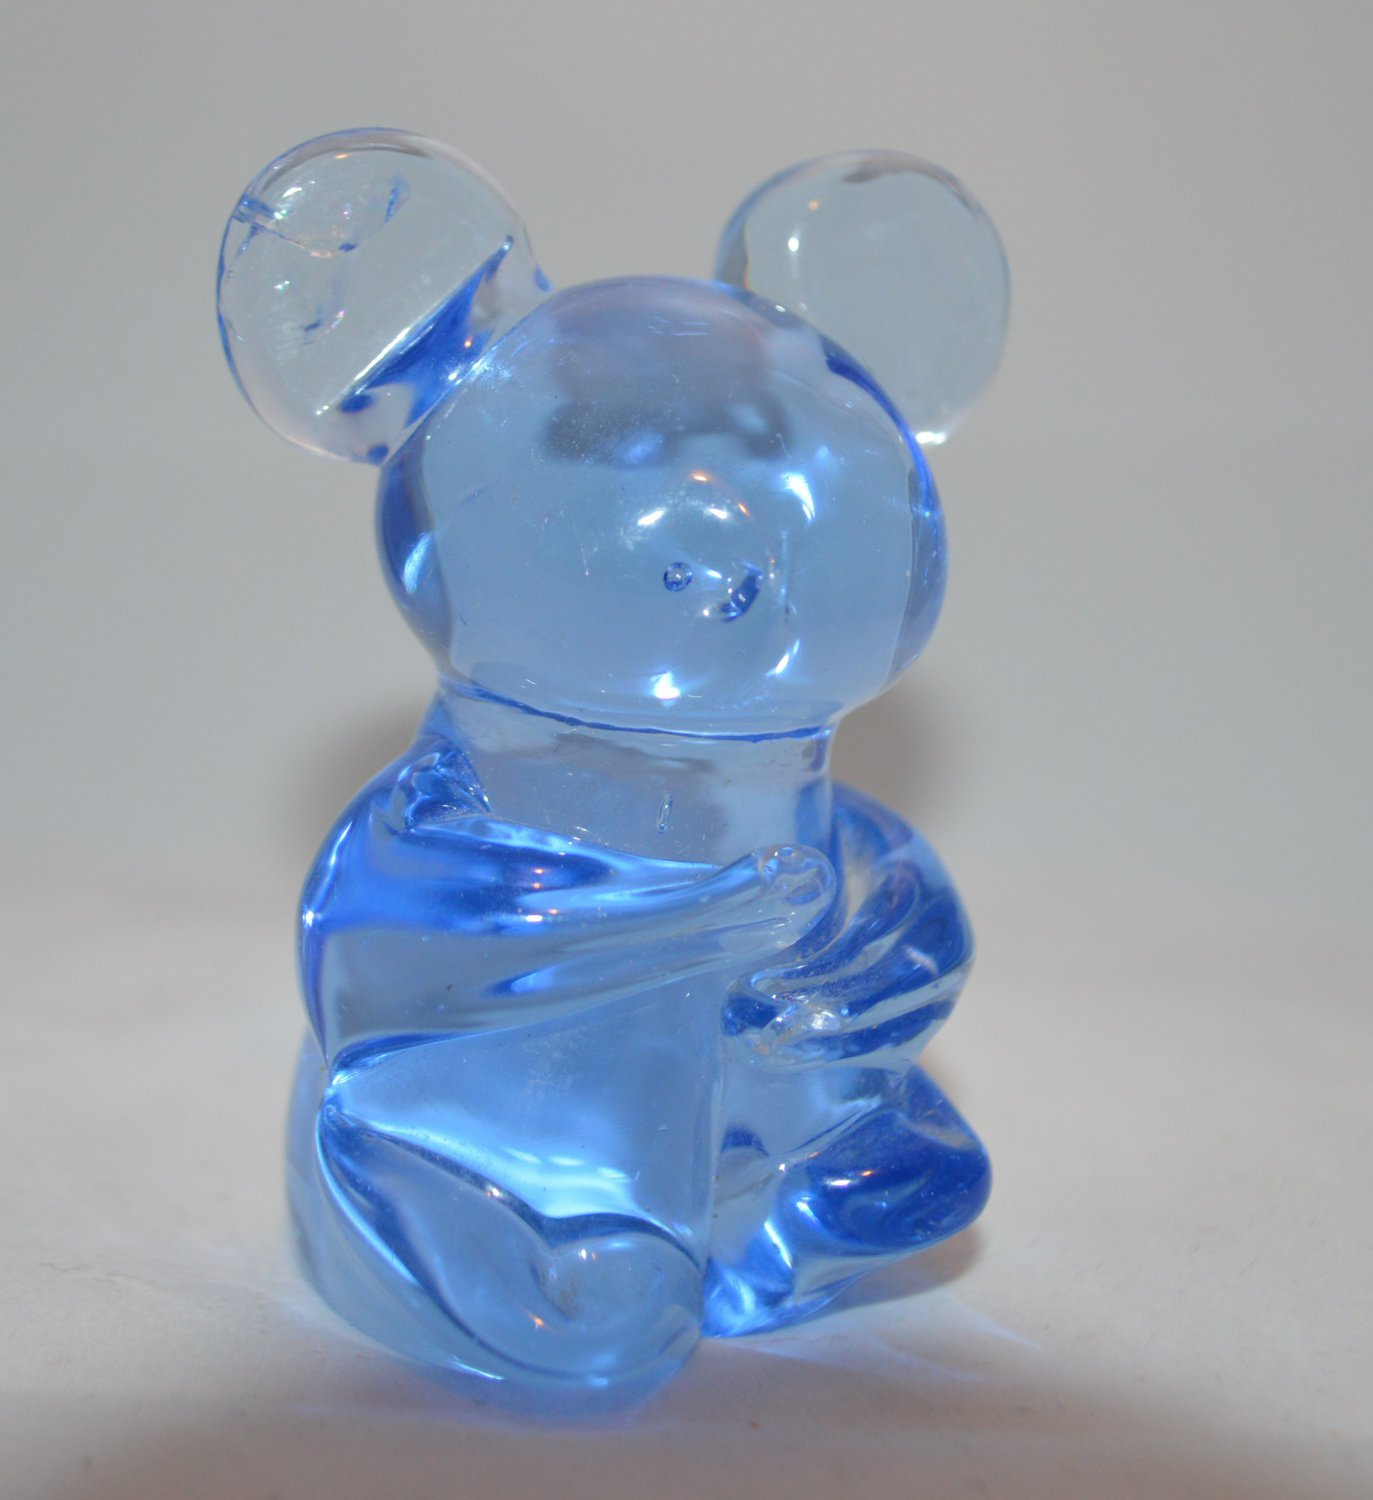 Titan Art Blue Glass Bear - iridescent Blue - Figurine Bear - Koala Panda